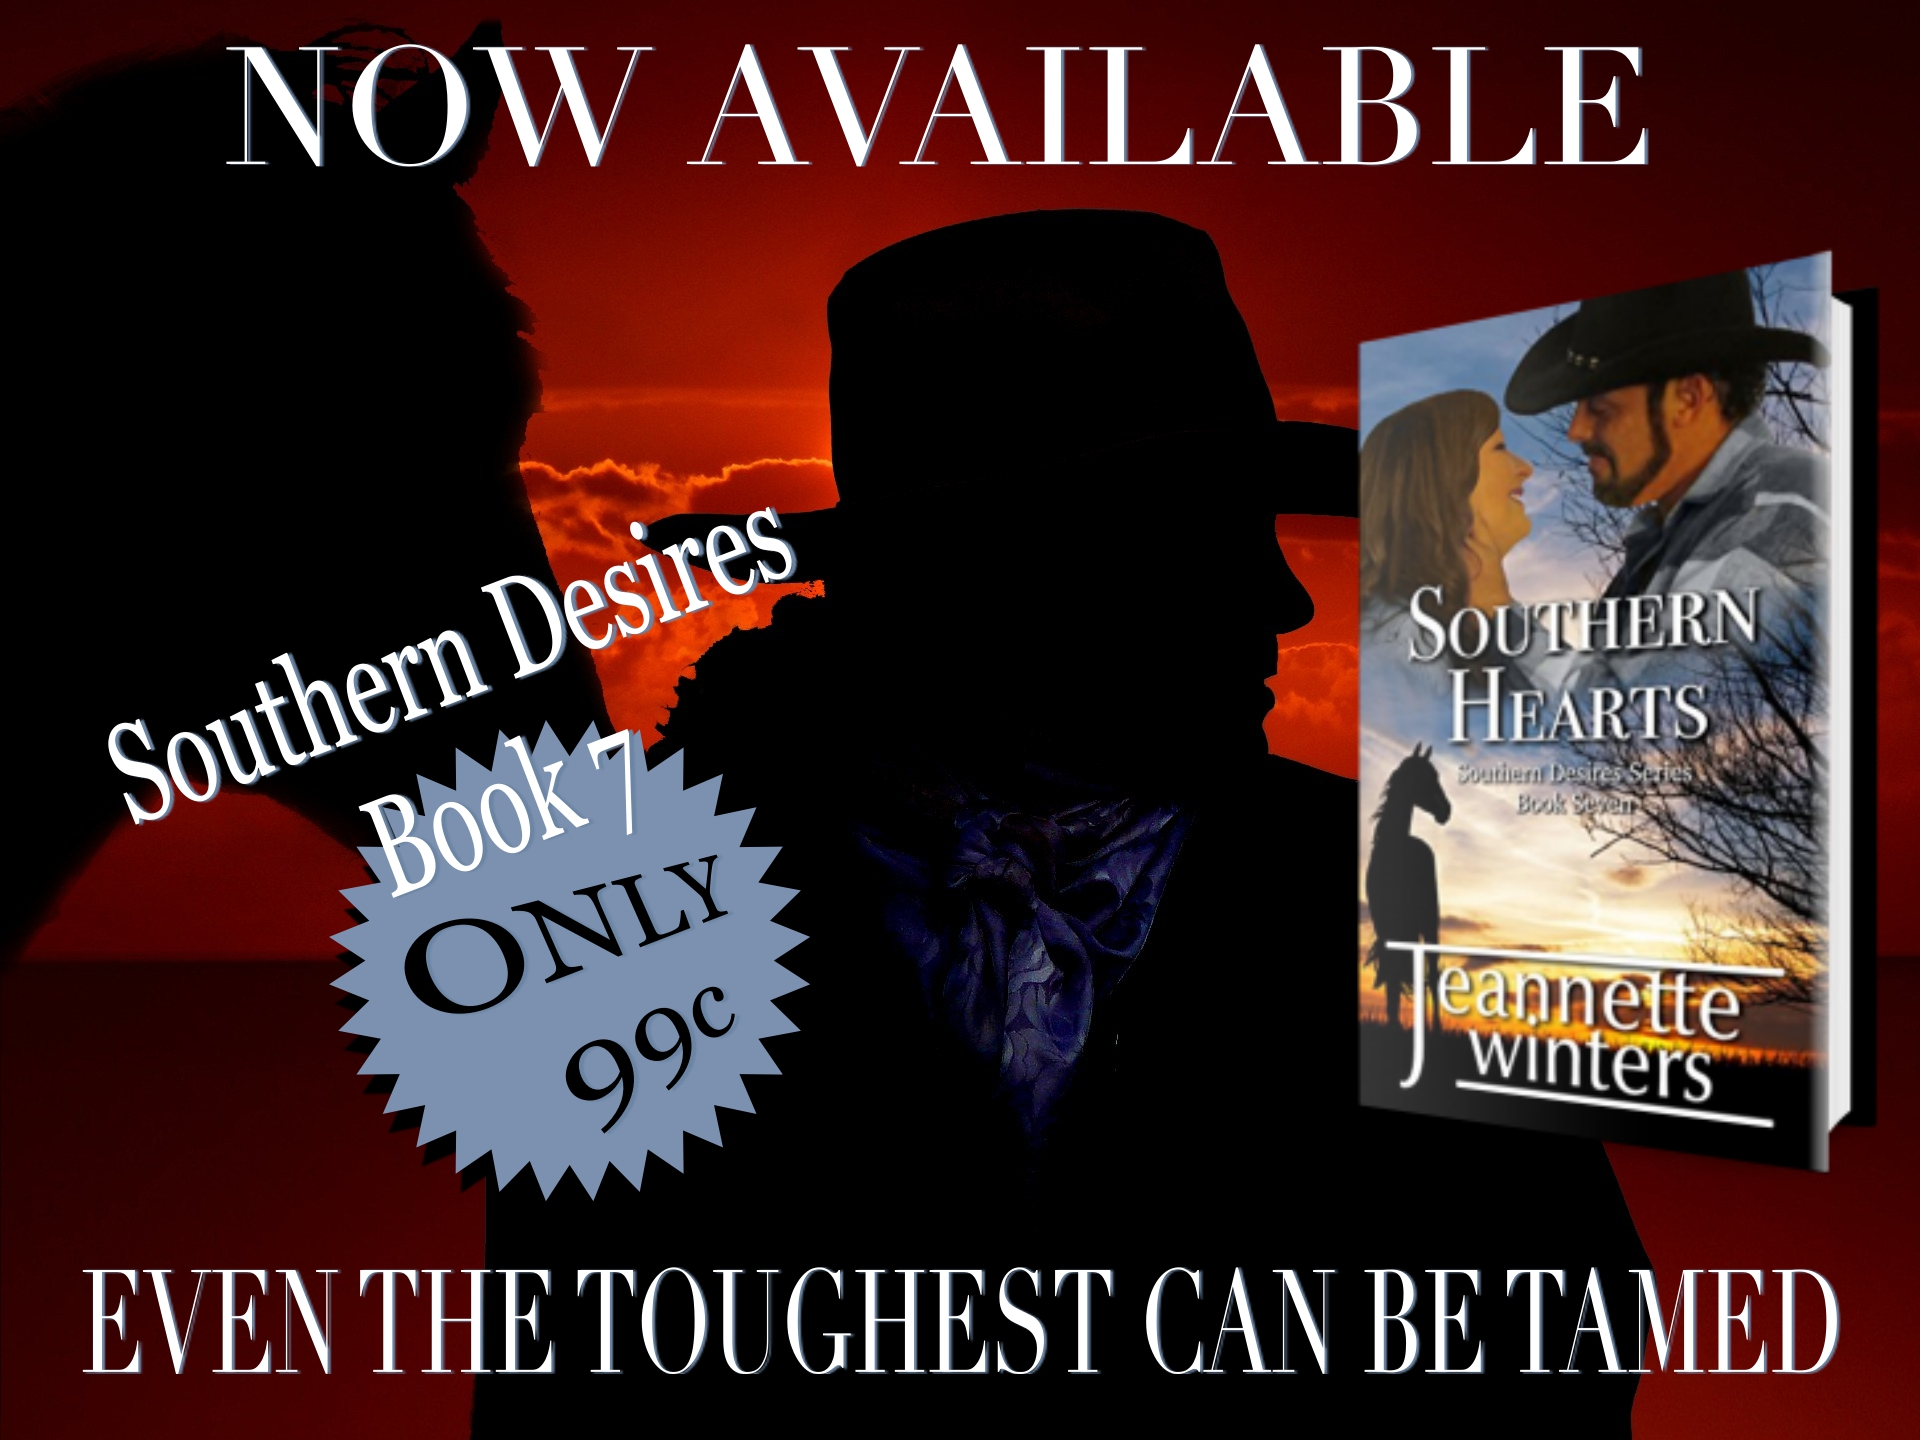 SOUTHERN HEARTS NOW AVAILABLE